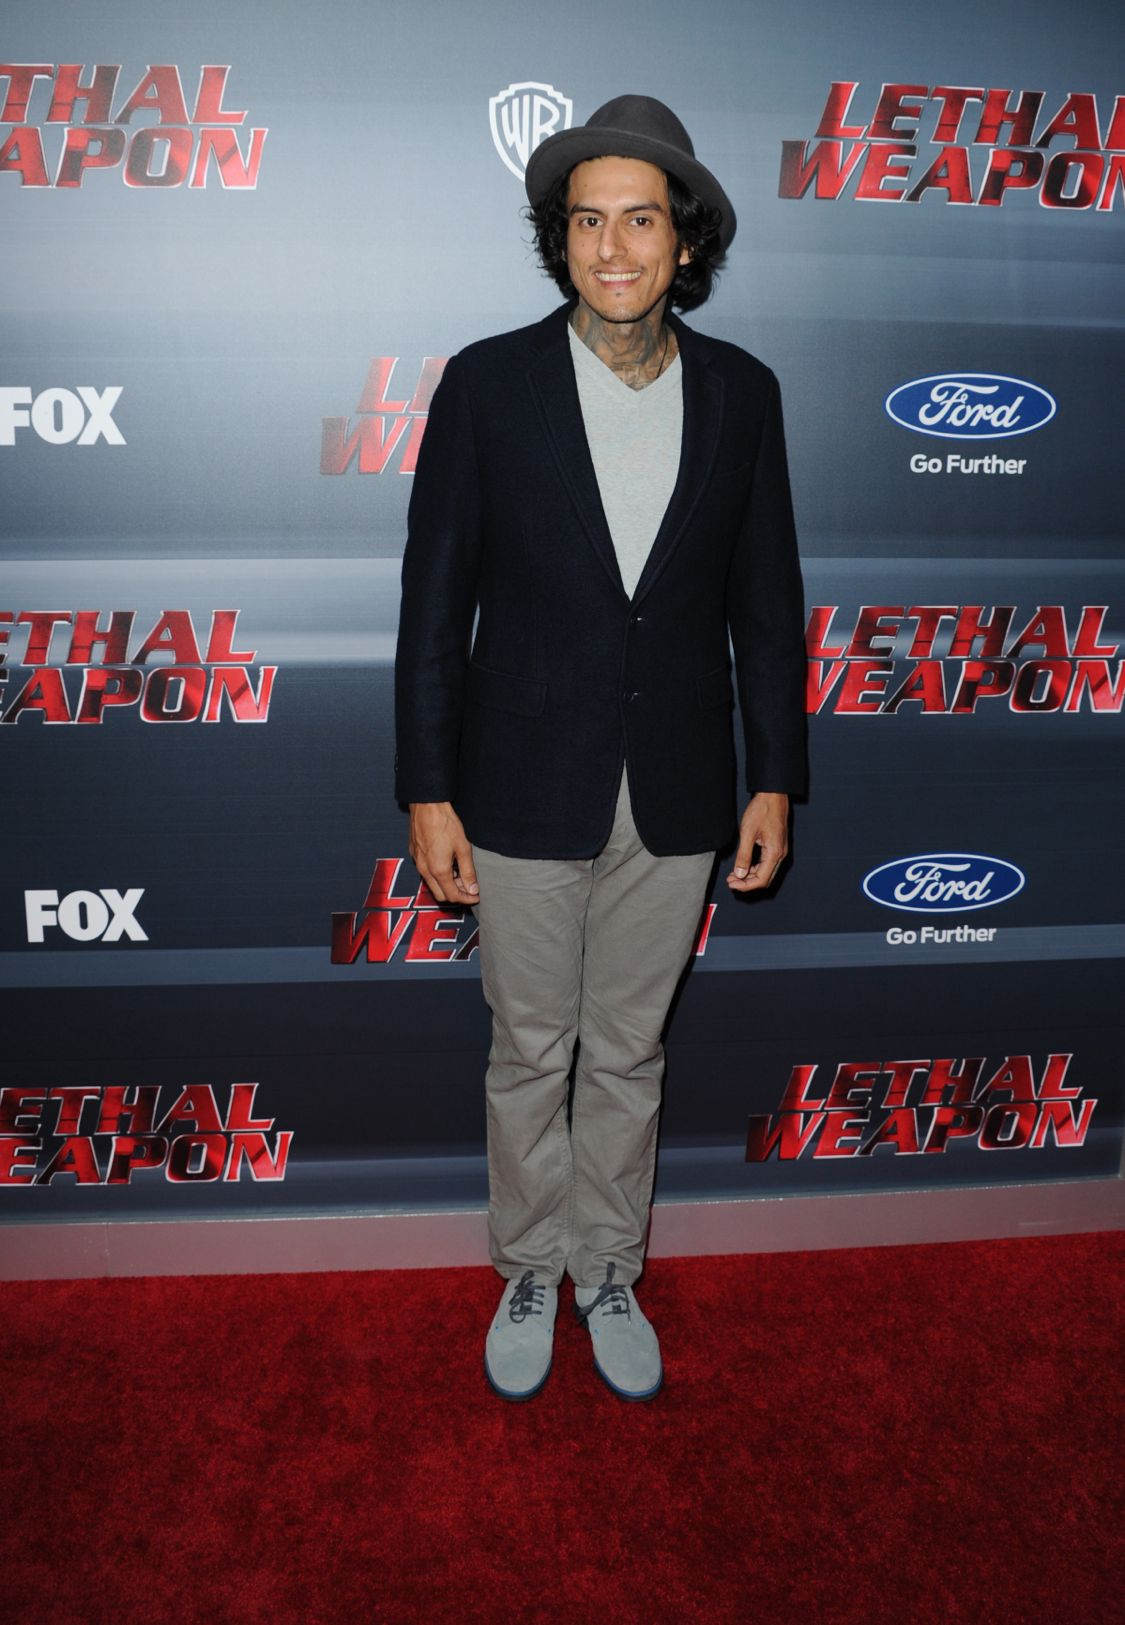 LETHAL WEAPON: Richard Cabral celebrates the LETHAL WEAPON premiere party at NeueHouse Hollywood on Monday, Sept. 12, in Los Angeles, CA, sponsored by Ford. LETHAL WEAPON premieres Wednesday, Sept. 21 (8:00-9:00 PM ET/PT) on FOX. ©2016 Fox Broadcasting Co. CR: Frank Micelotta/FOX